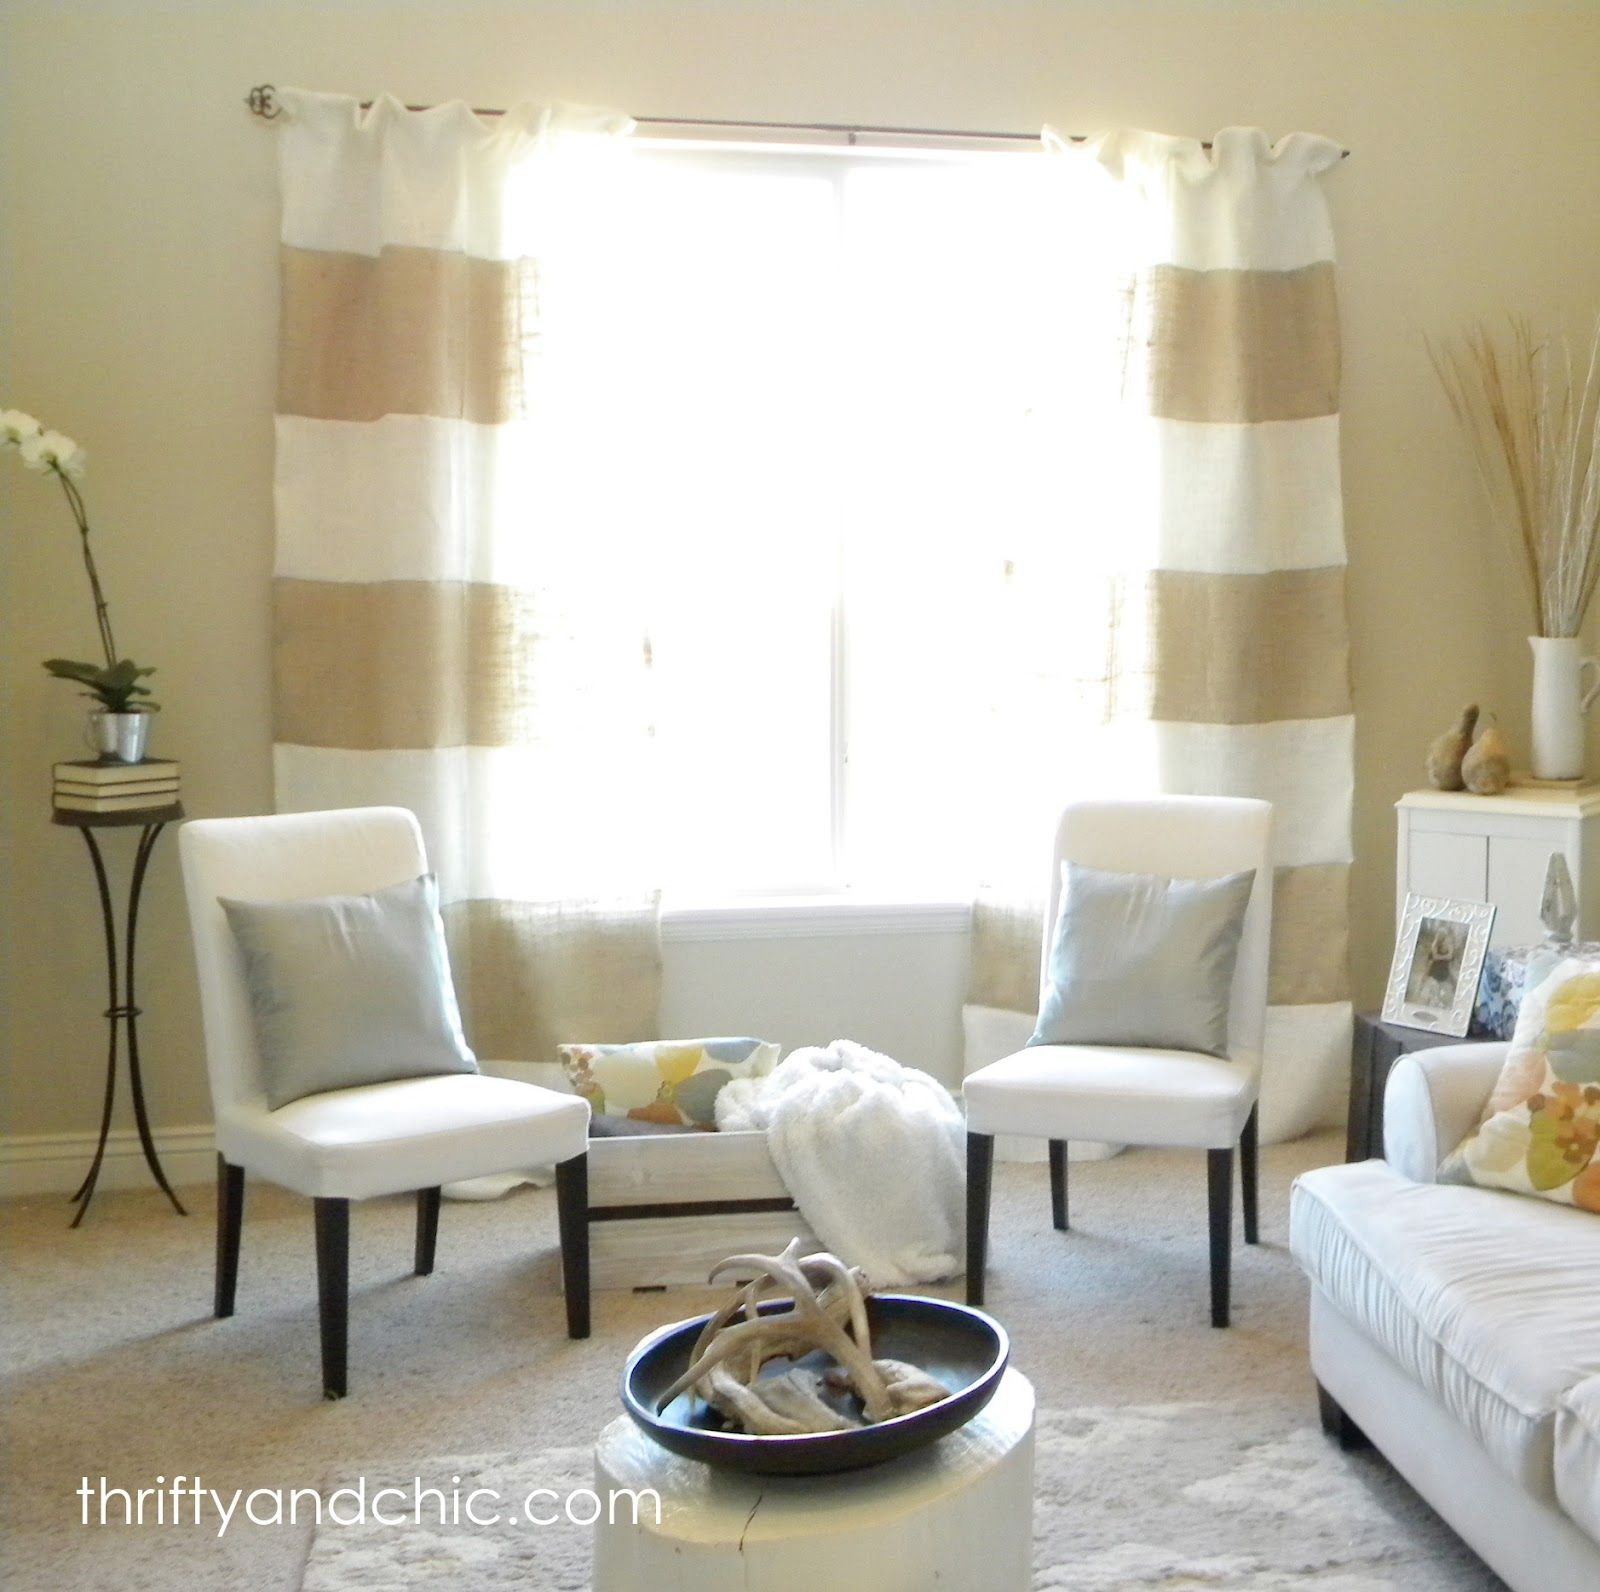 Thrifty And Chic Striped Burlap Curtains How To Make Maybe Black Instead Of White